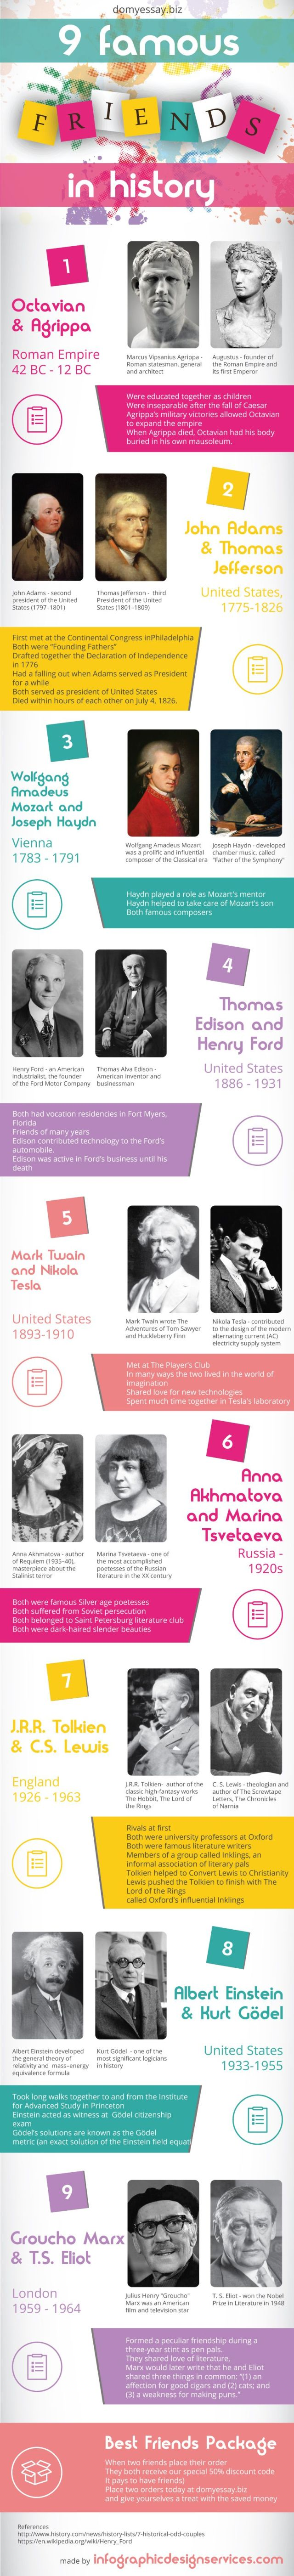 Most Famous Real-life Friendships in History #infographic